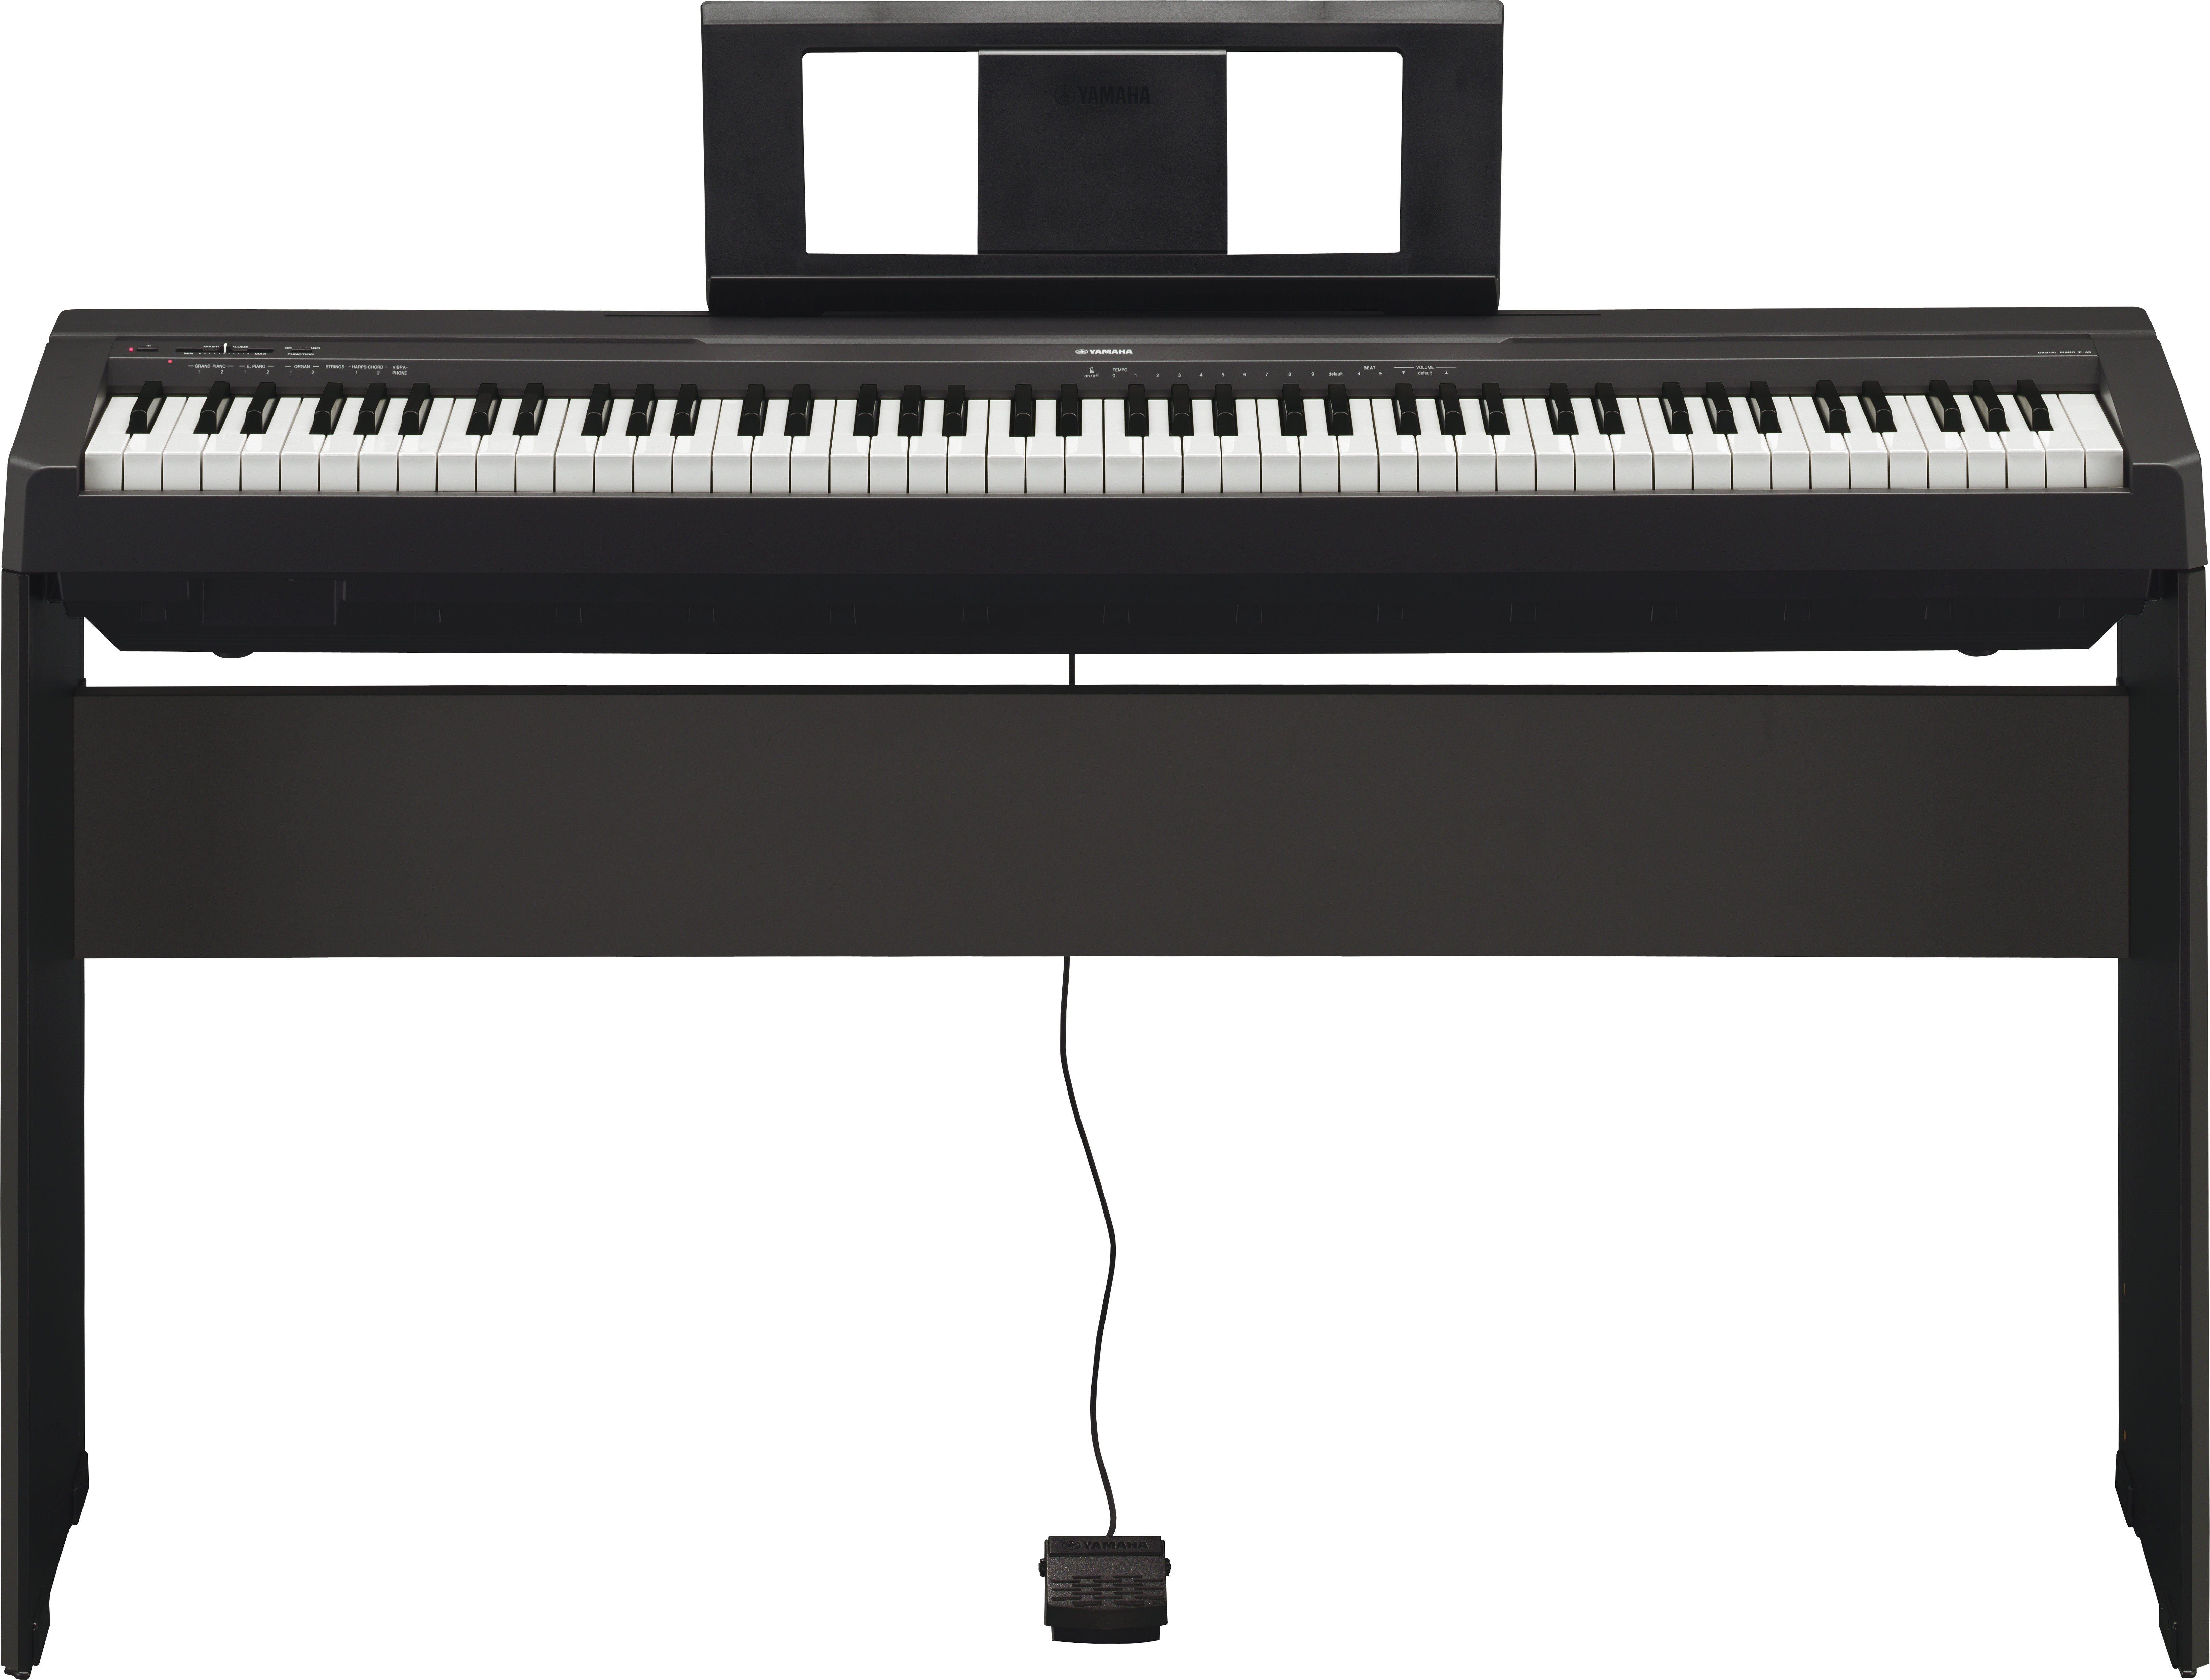 yamaha p45  P-45 - Overview - P-Series - Pianos - Musical Instruments - Products ...